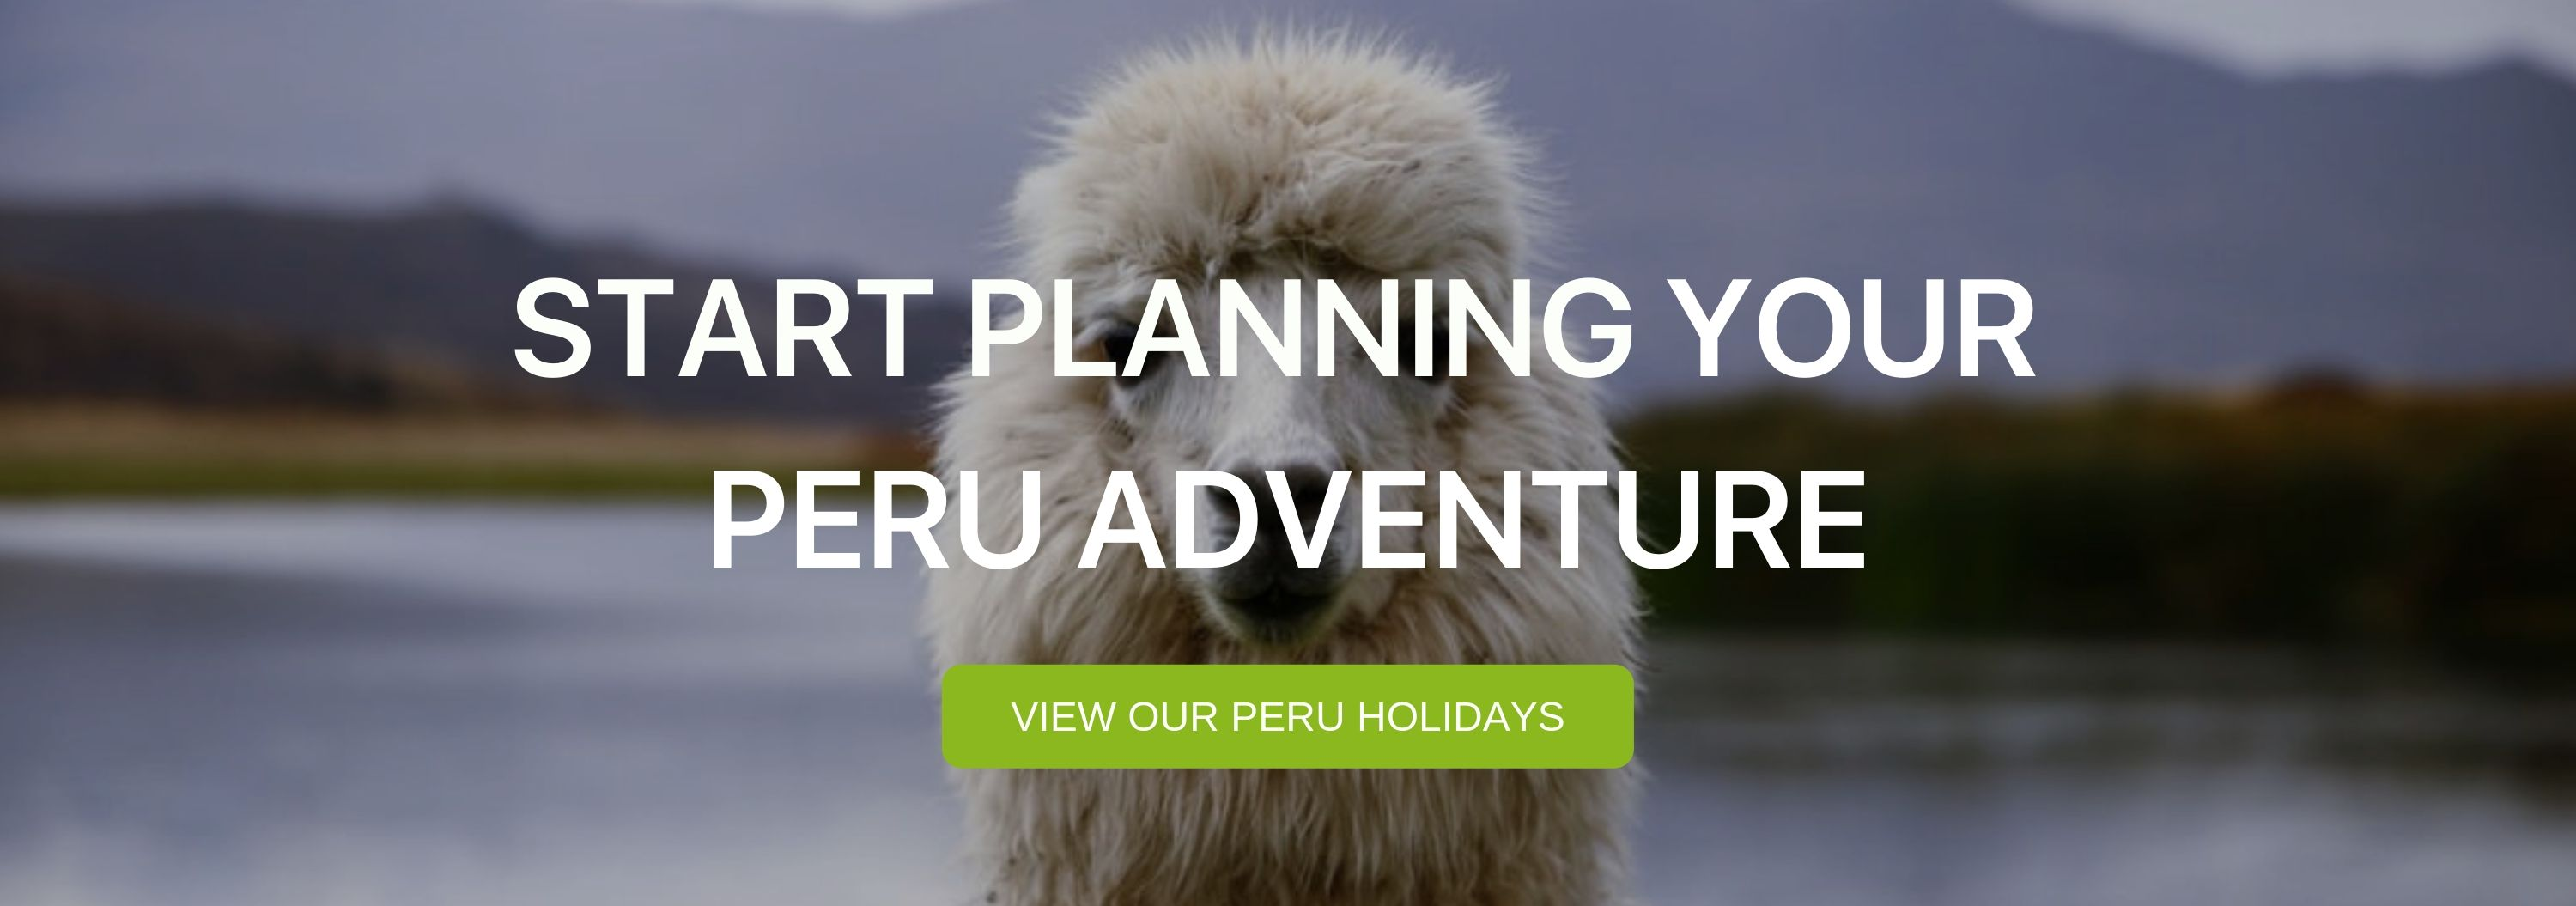 """A banner that reads """"Start Planning your Peru Adventure"""" with a llama in the background."""